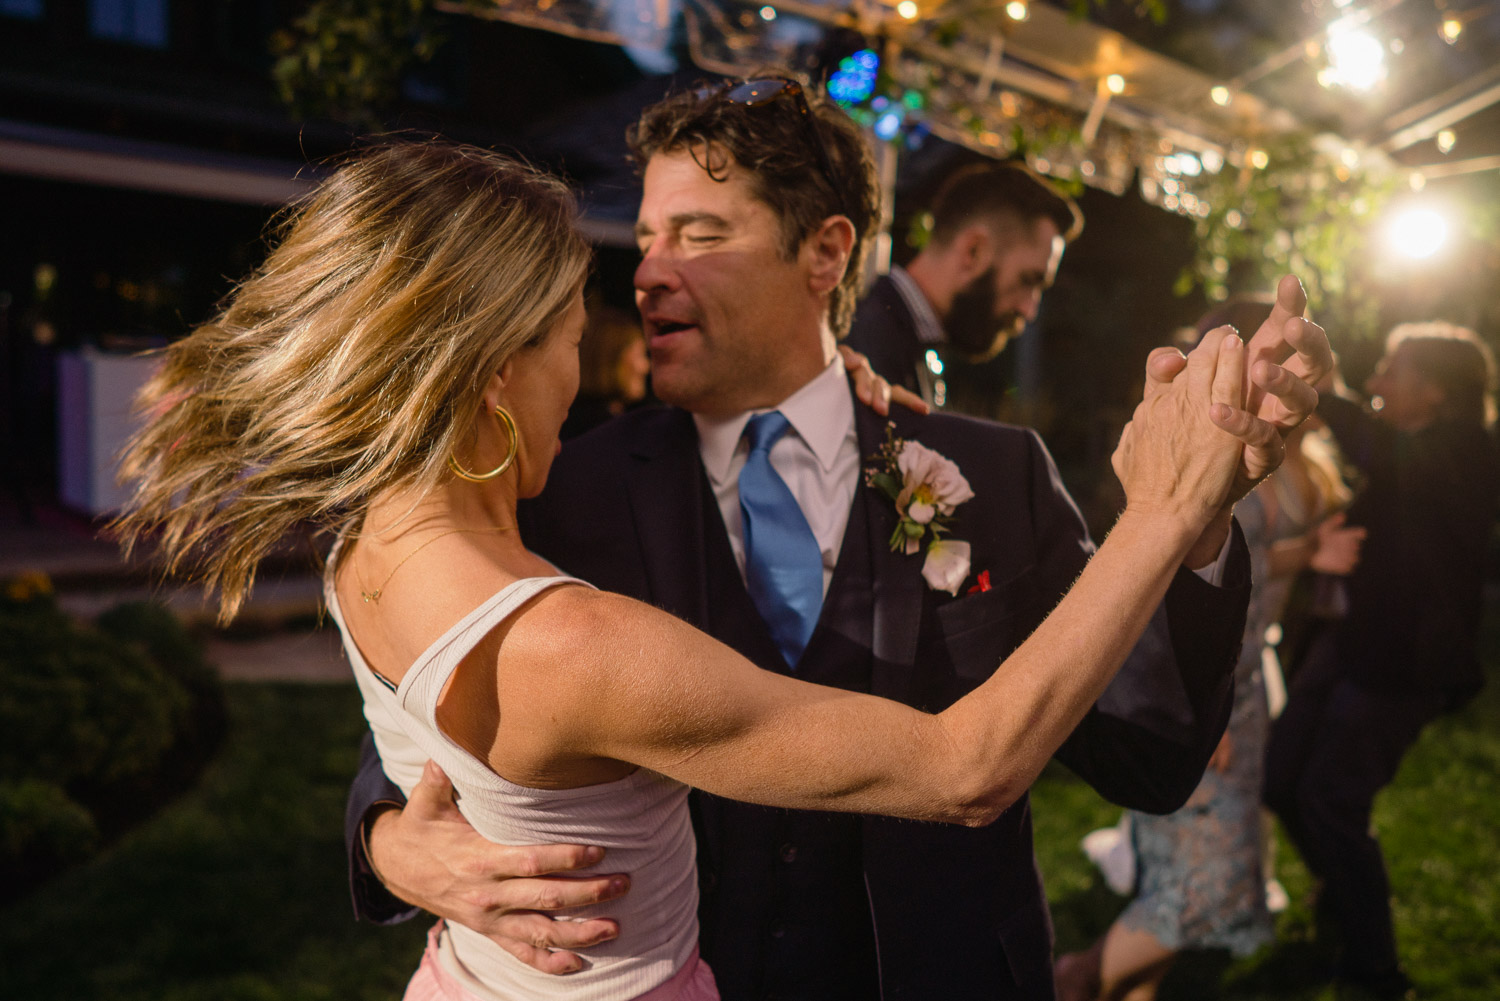 couple dancing at night under lights park city outdoor wedding